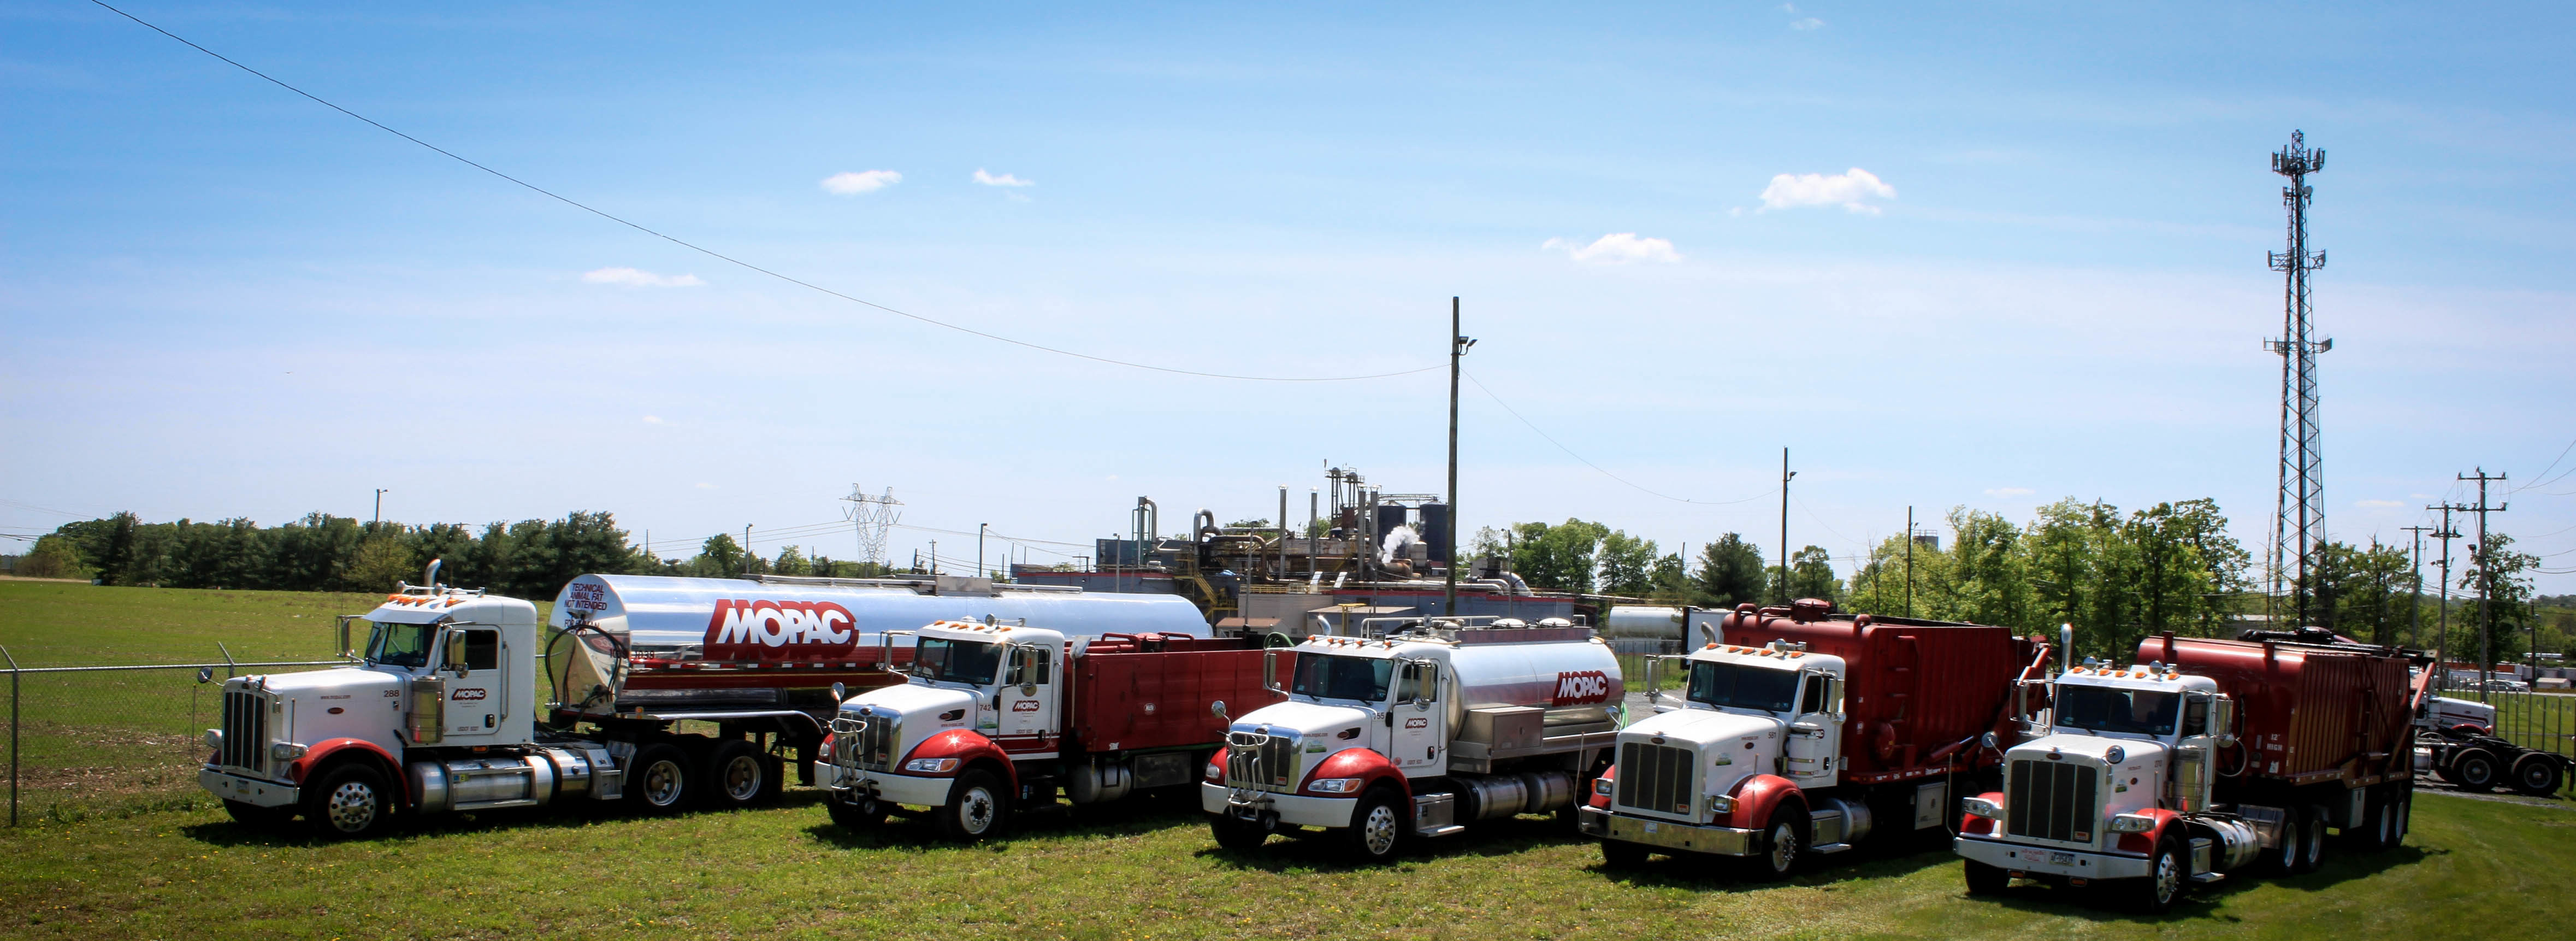 Used Cooking Oil Collection Trucks